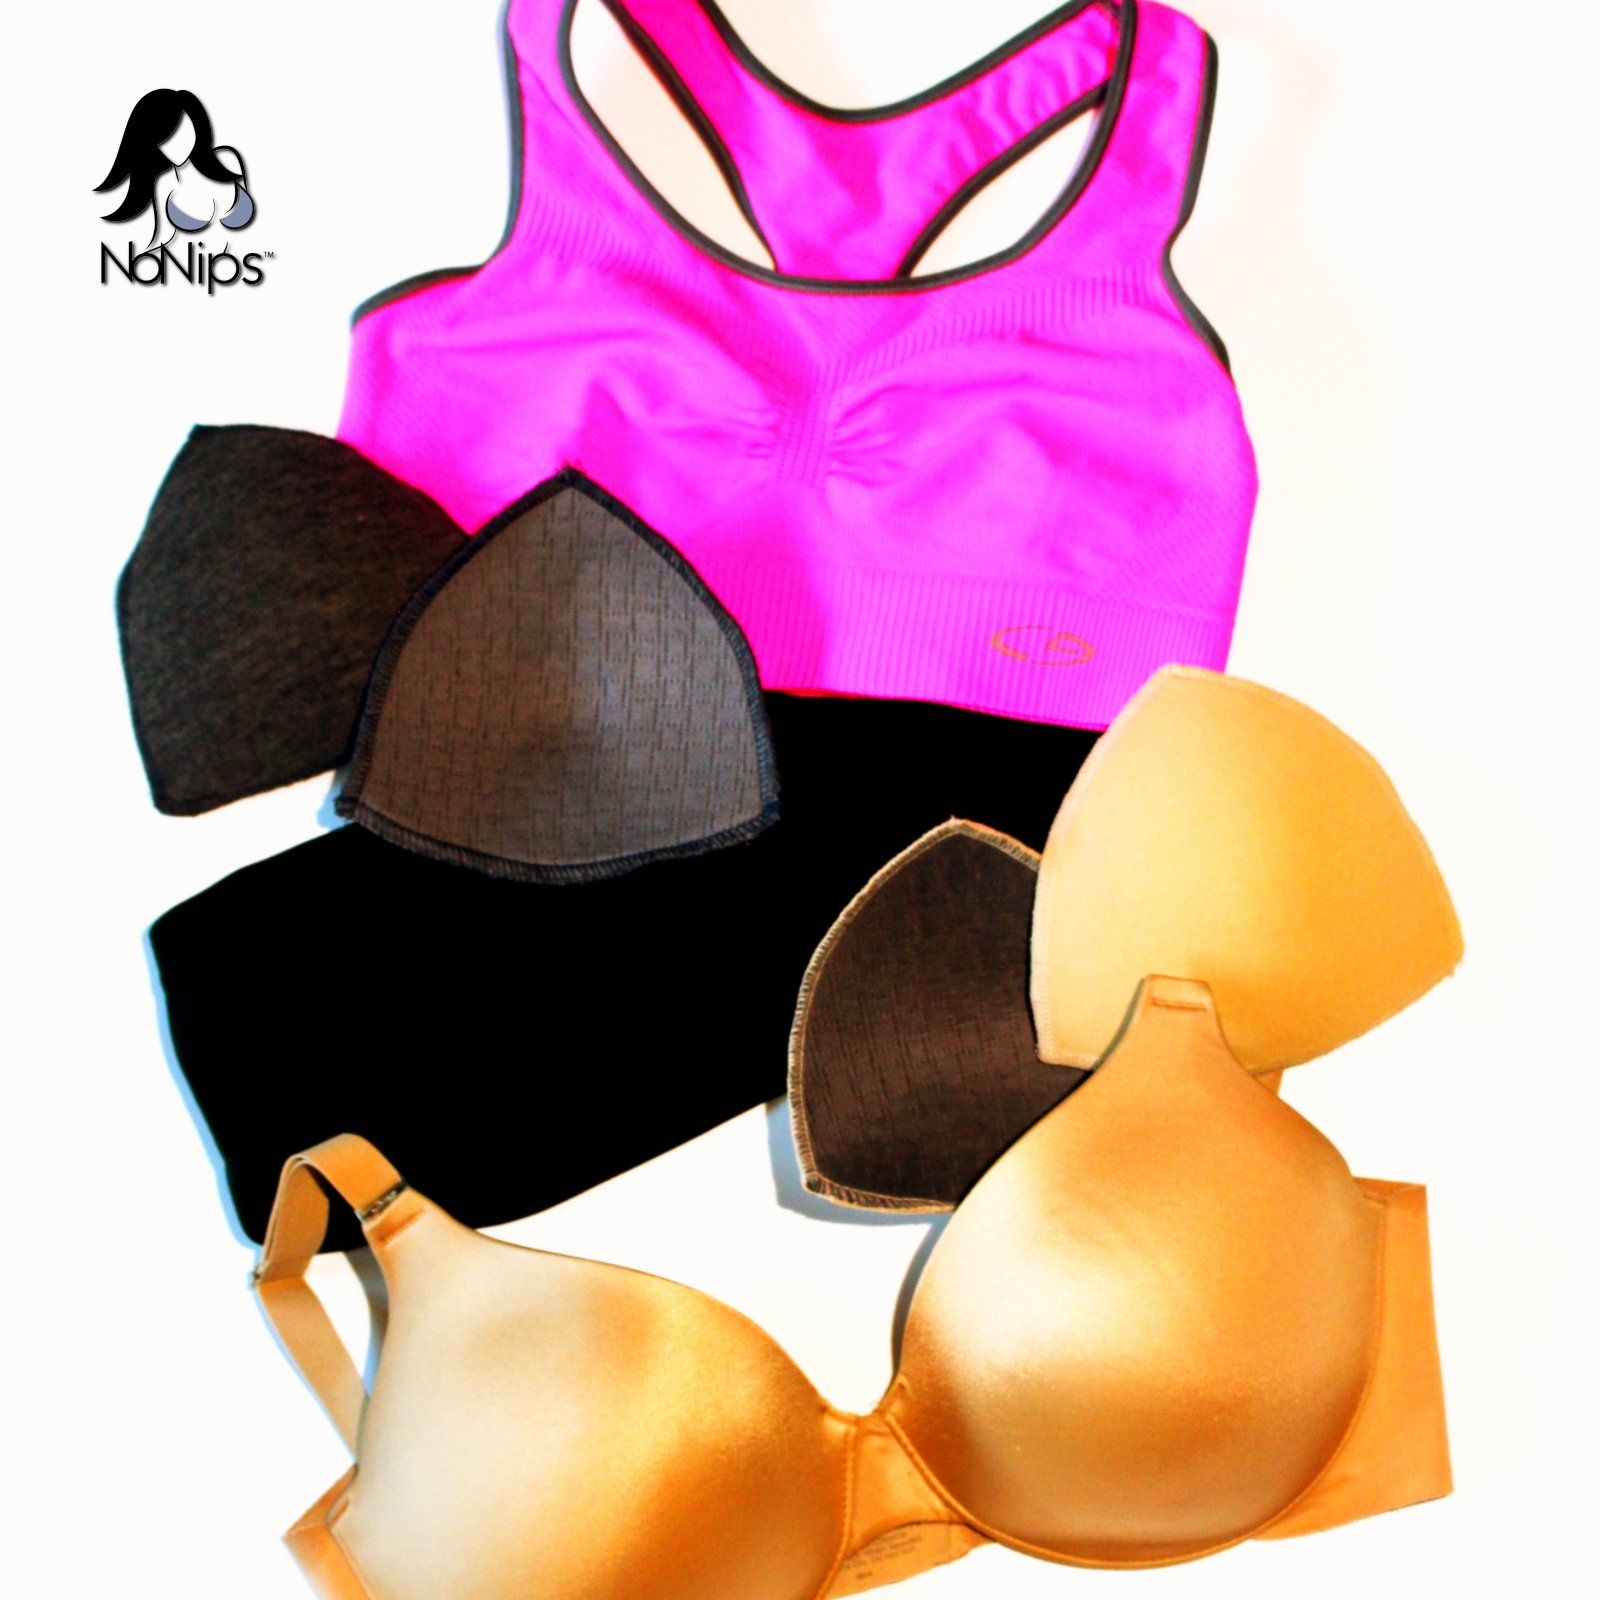 NoNips Bra Inserts Offer Modesty & Comfort! NoNips bra inserts ...